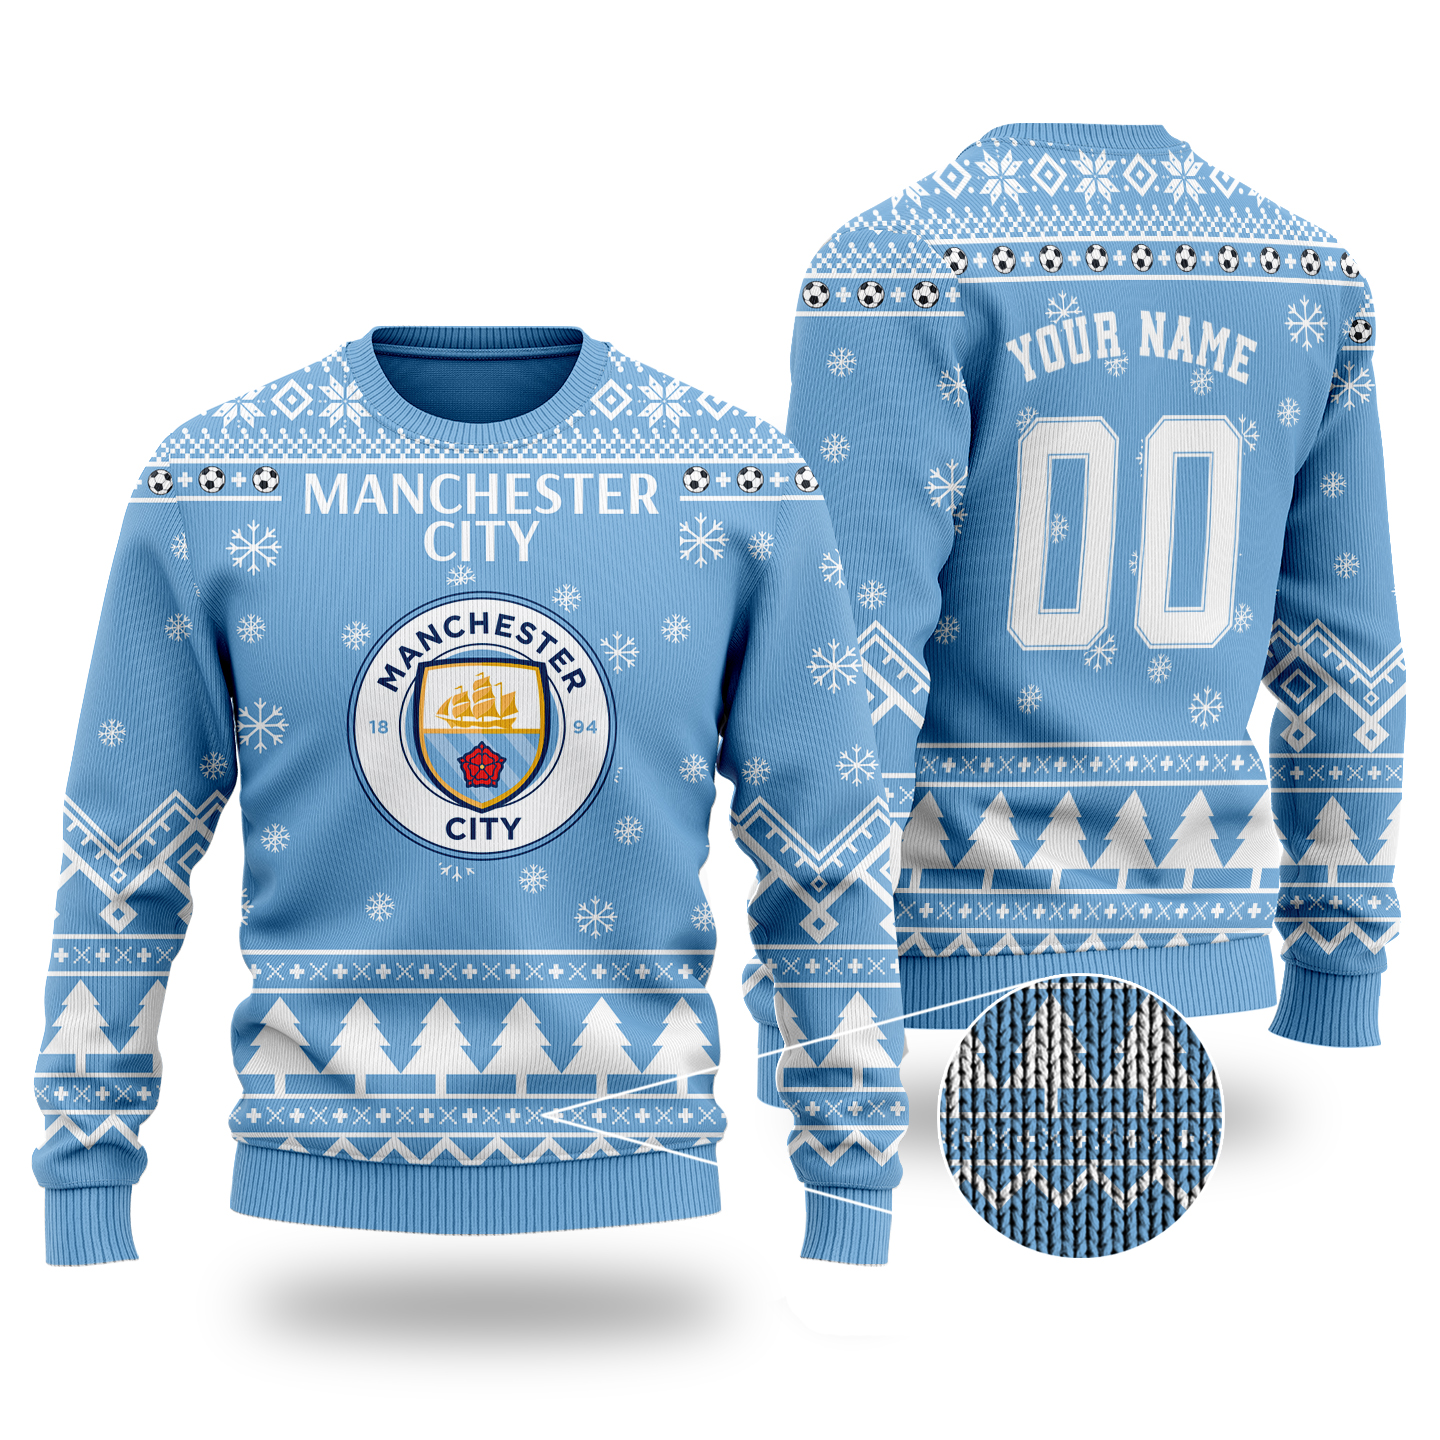 Manchester City custom ugly Christmas sweater